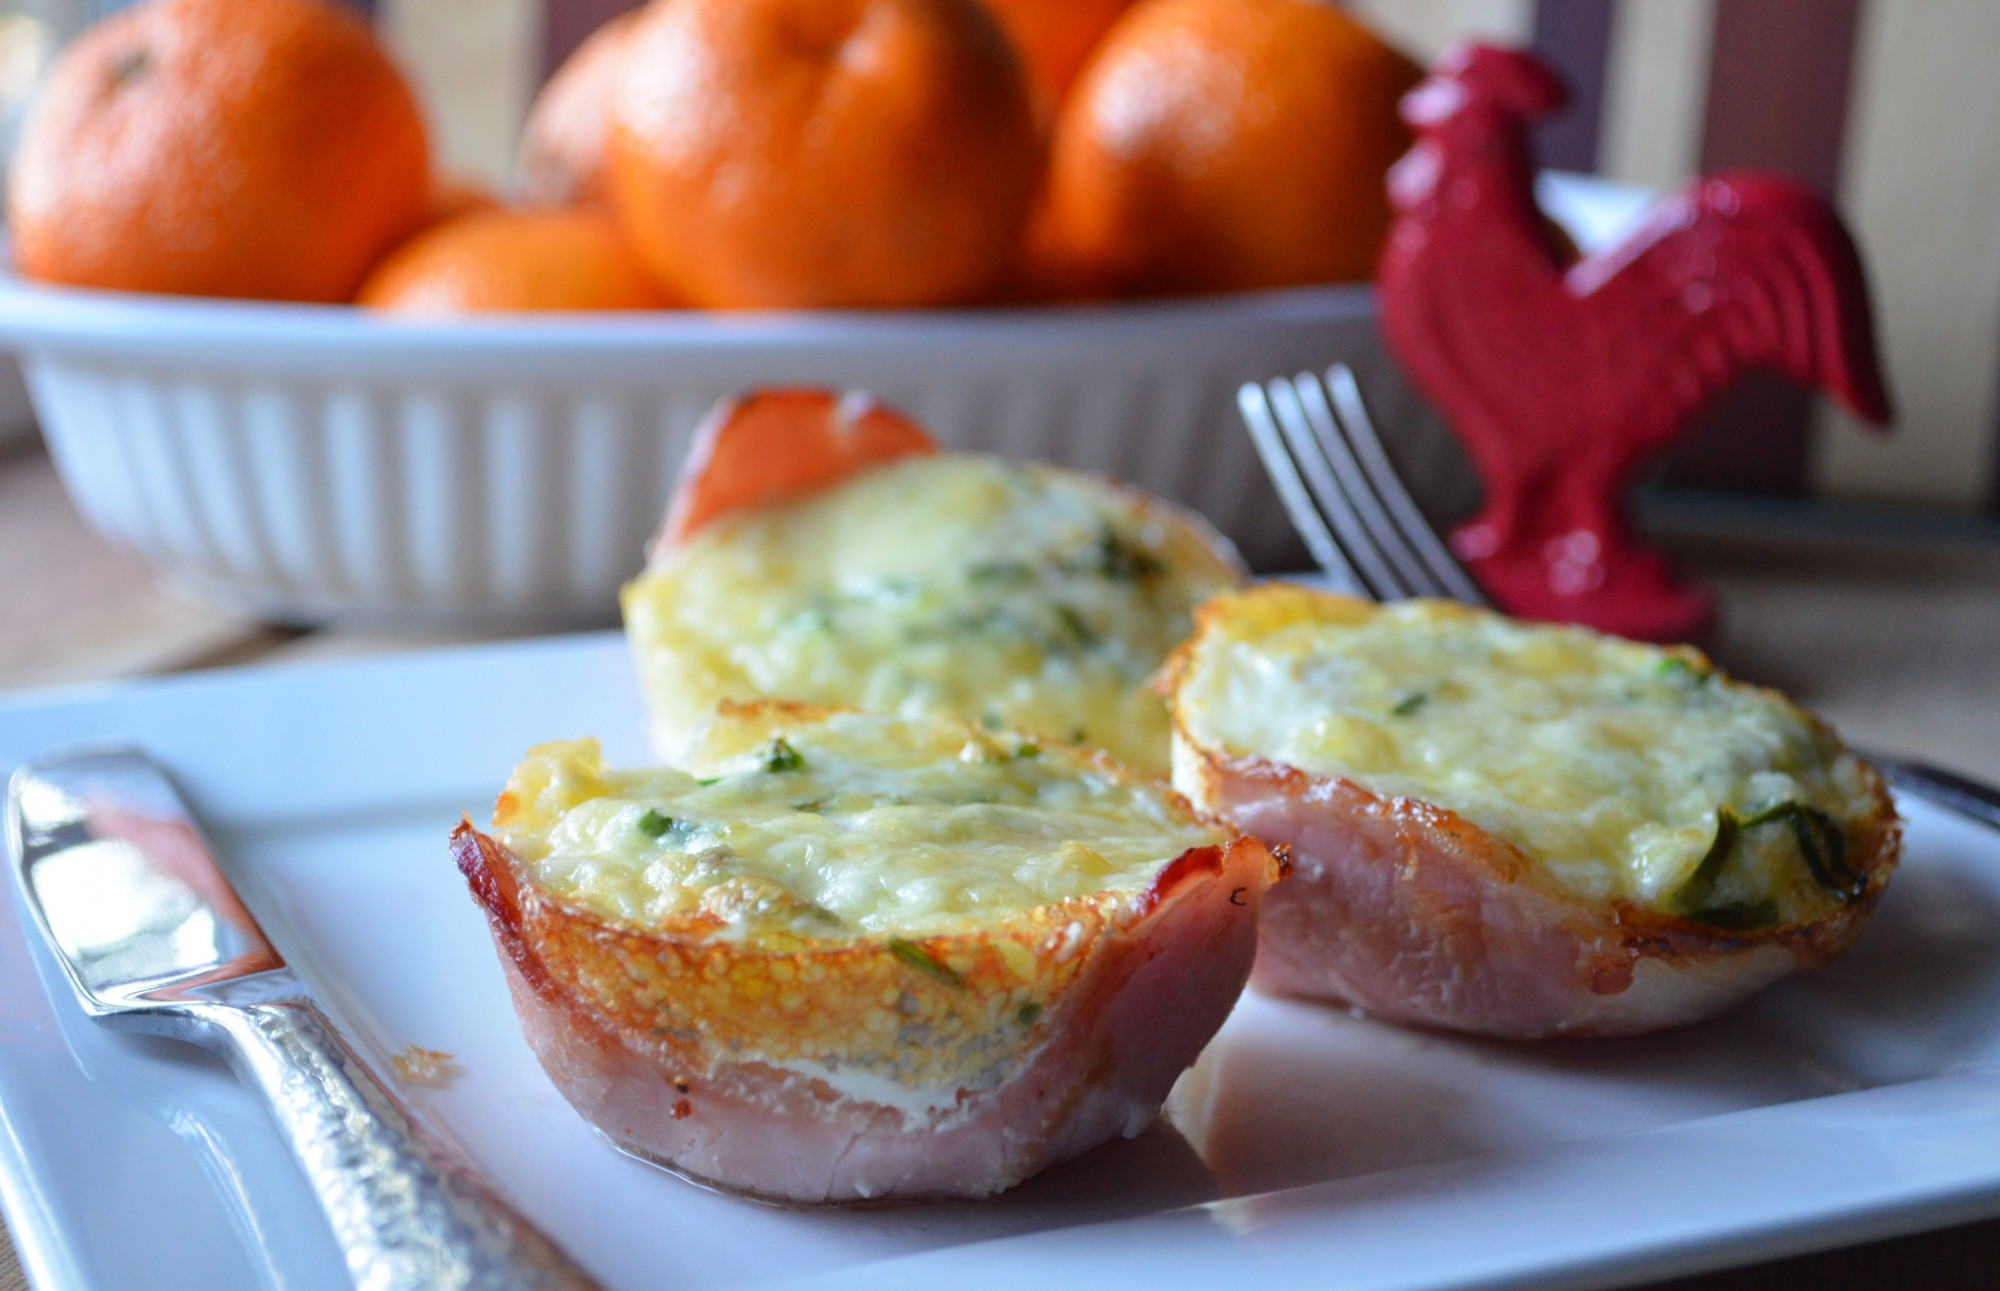 Soft baked eggs and cheese in Canadian bacon